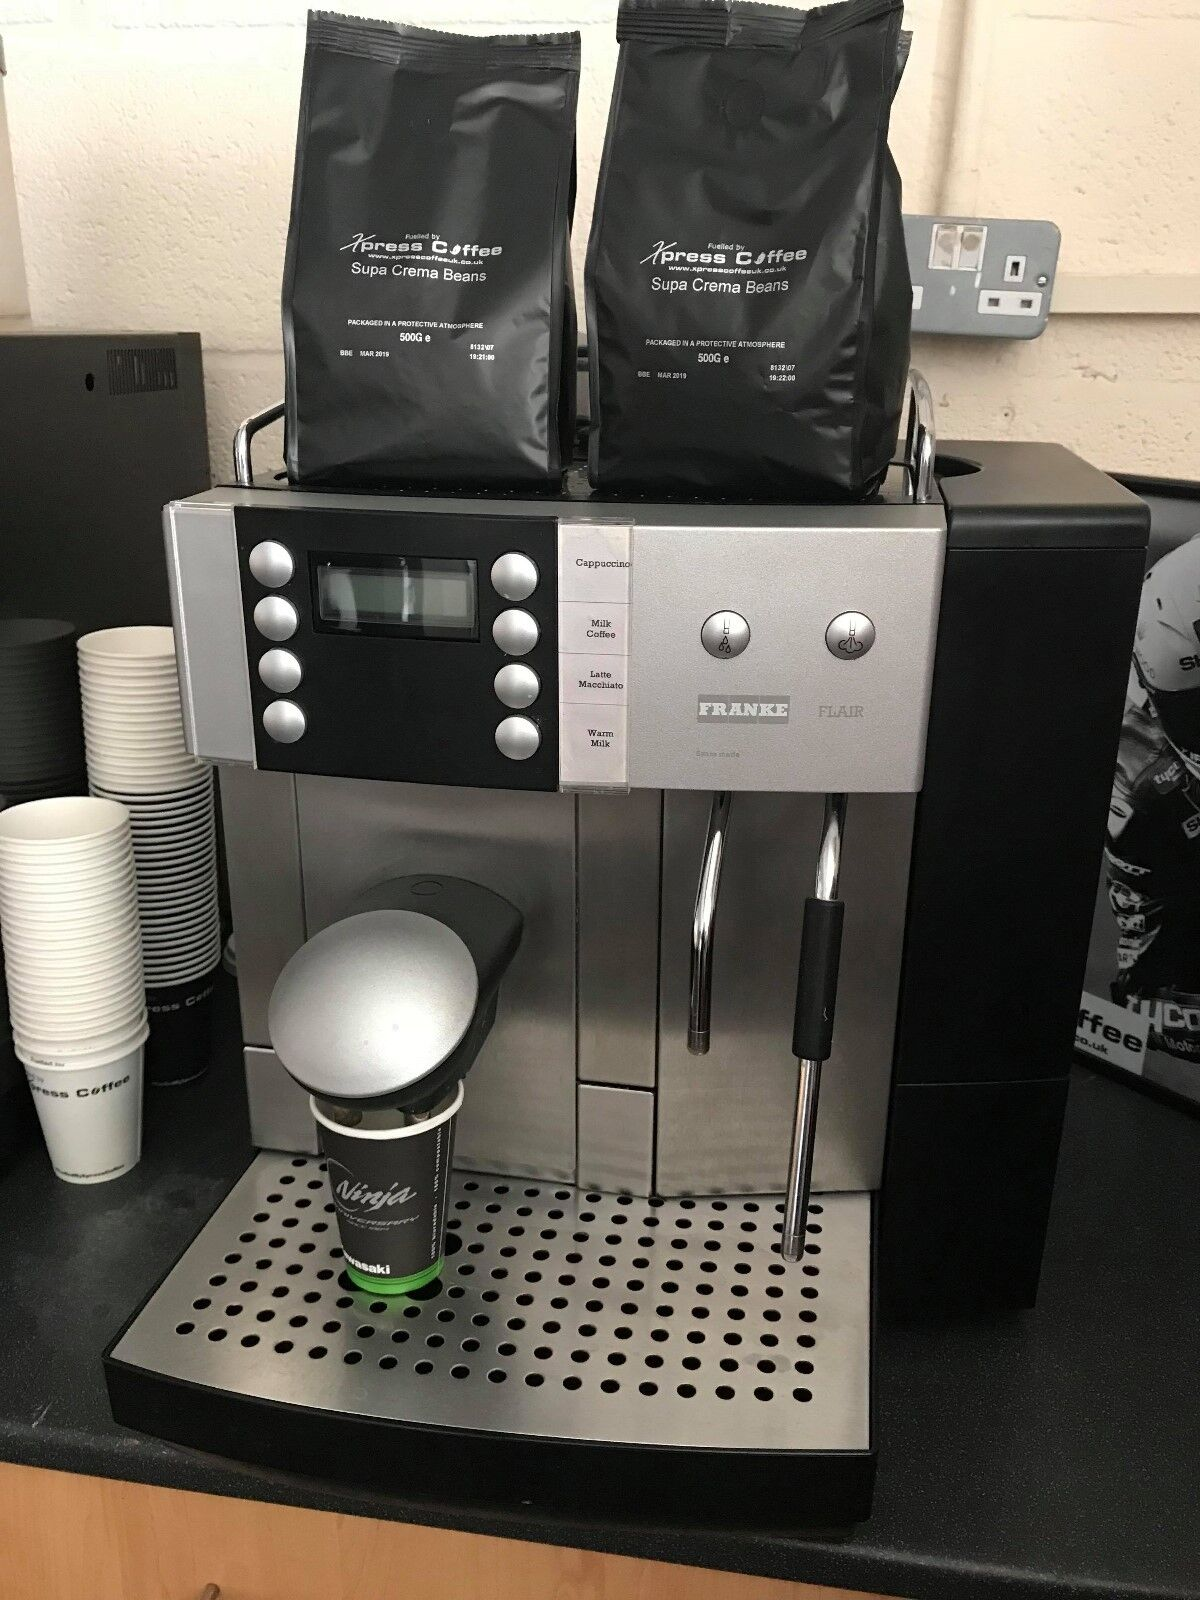 Franke Coffee Systems Franke Flair Bean To Cup Coffee Machine